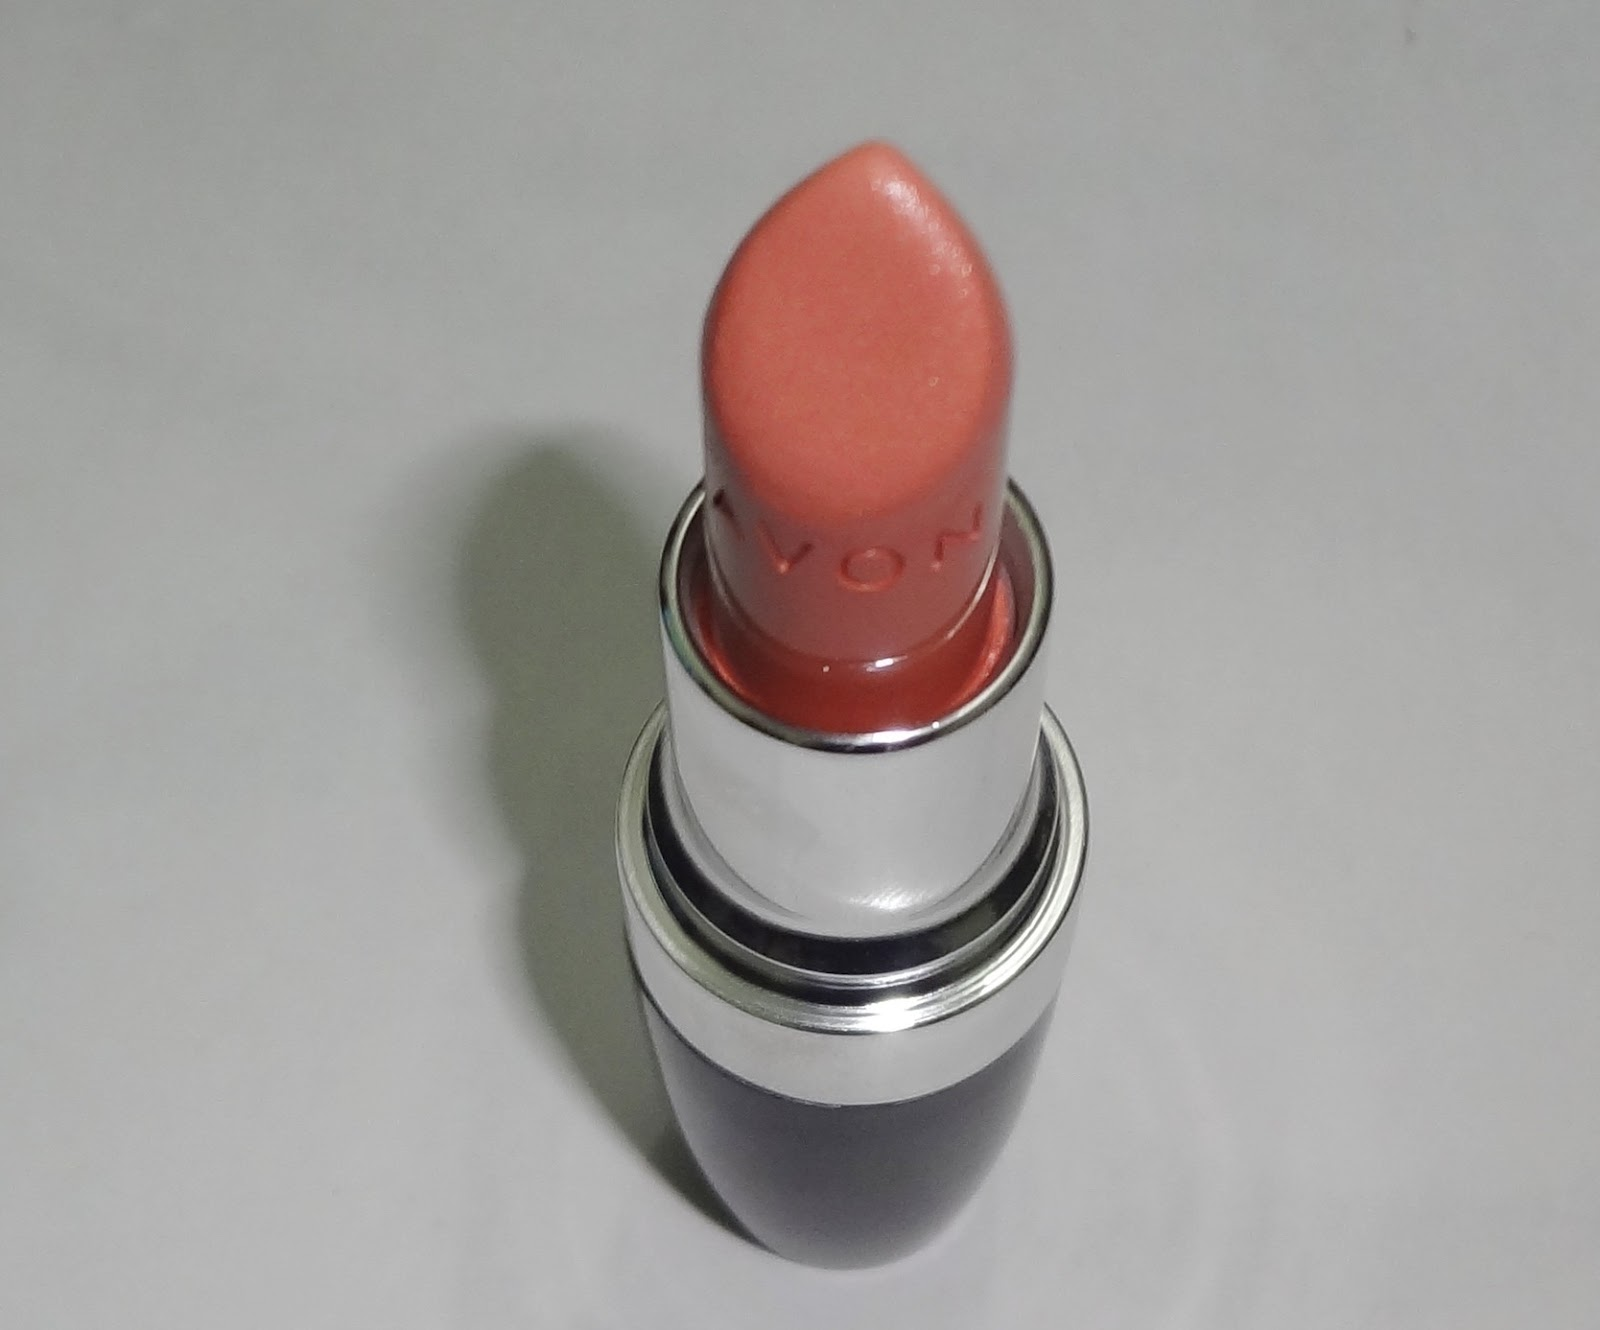 Makeup and daily: Batom Ultra Color Avon - Nude Matte 154